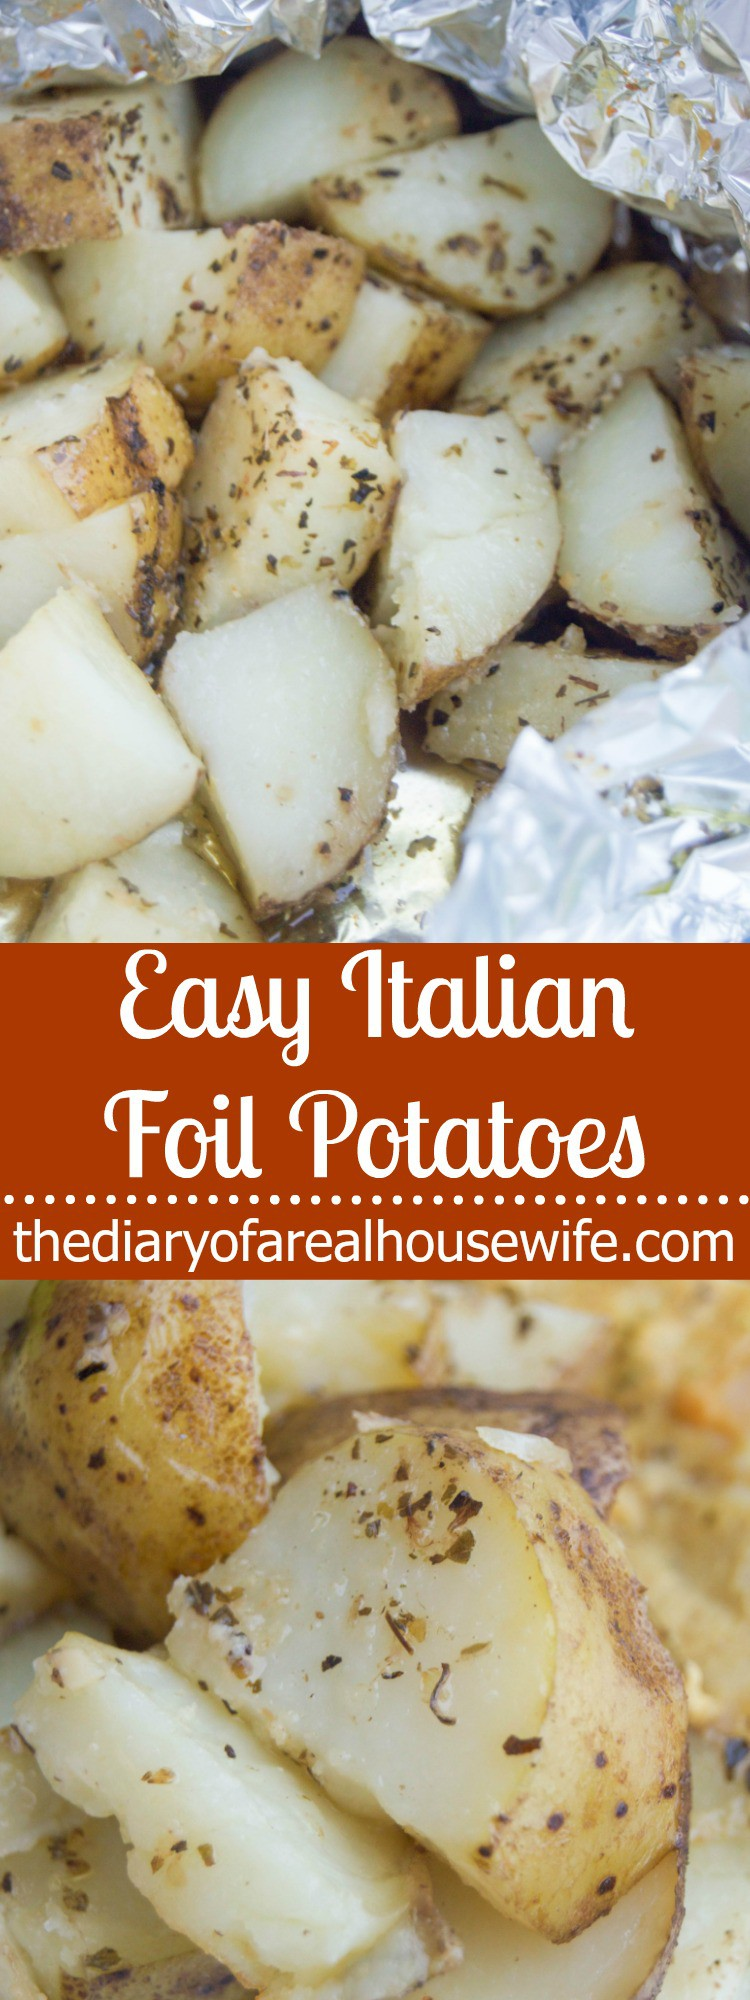 Easy Italian Foil Potatoes